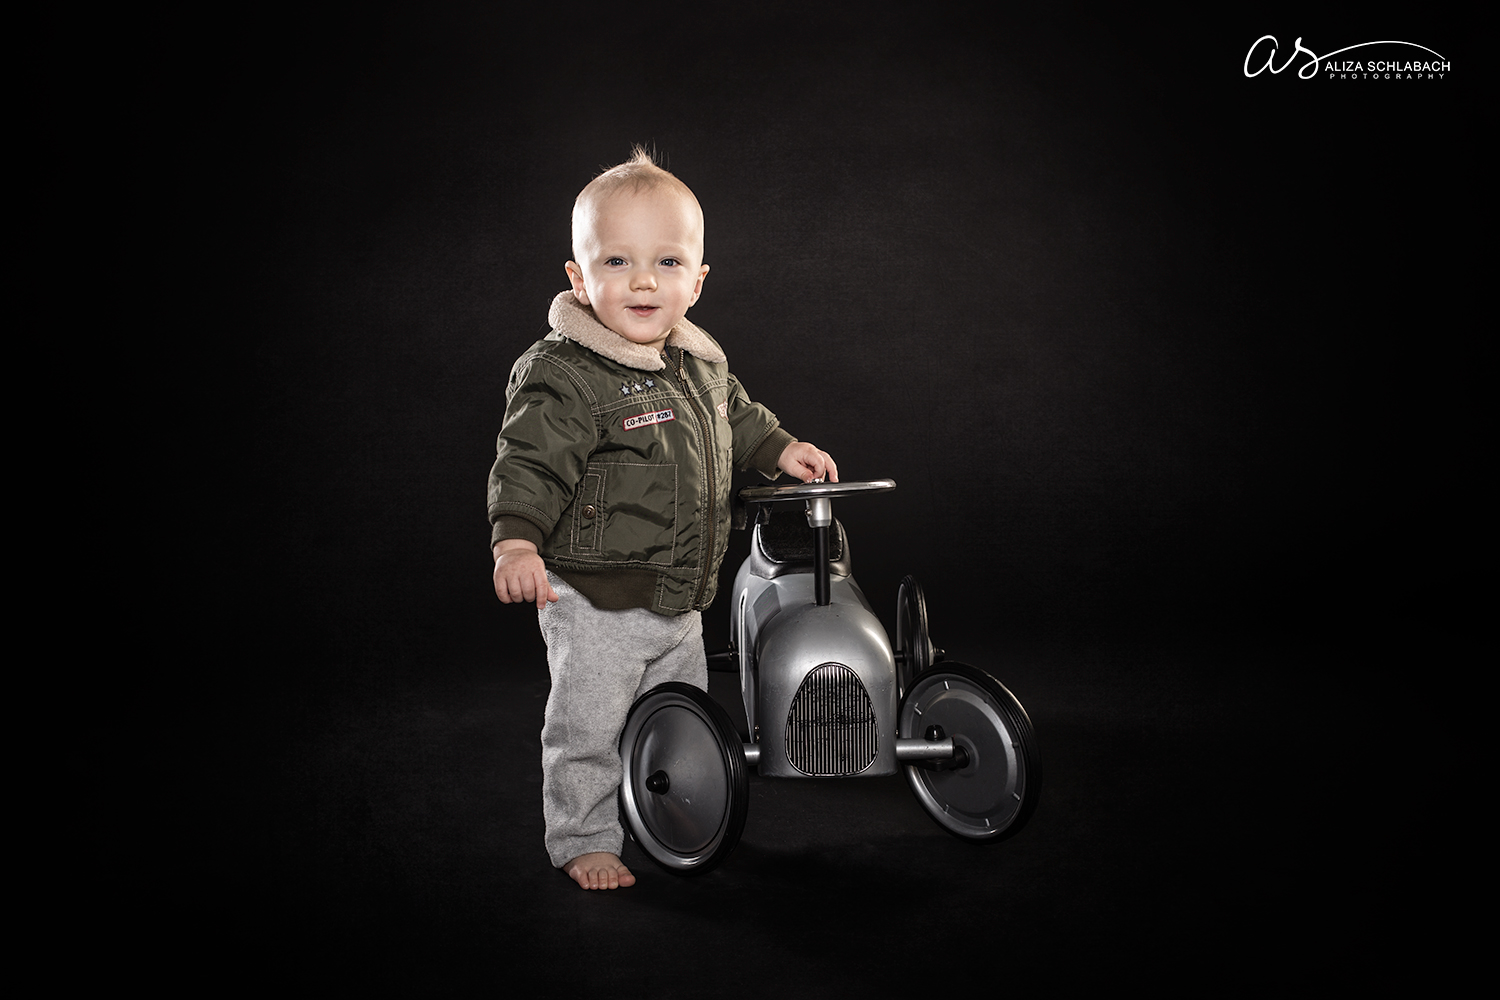 Photo of one year old boy with vintage ride on car and bomber jacket